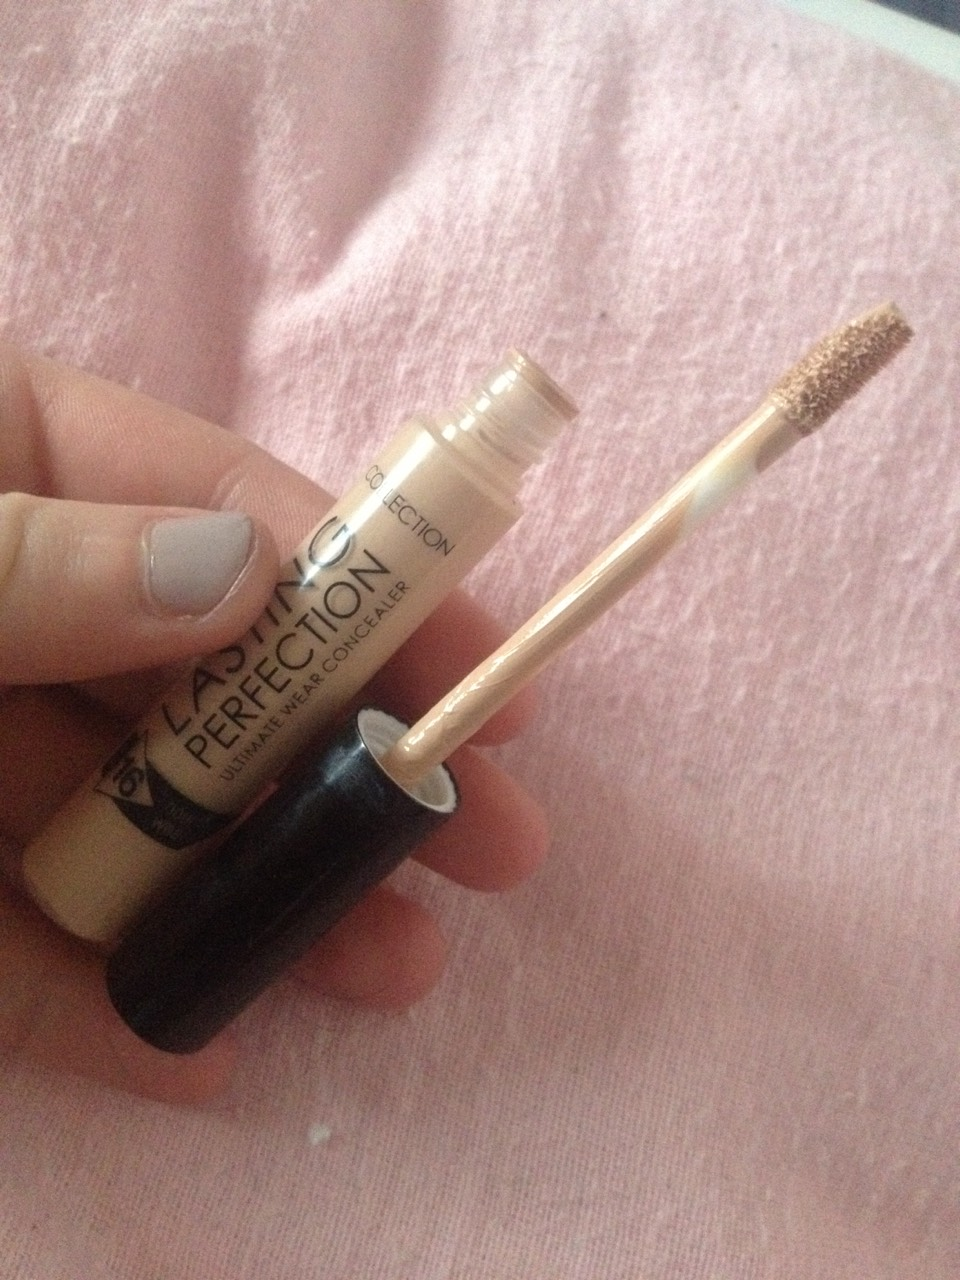 This is collection-lasting perfection ultimate wear concealer I love this because it's a 16 hour wear and it's great for covering up the little blemishes that your foundation doesn't master I highly recommend this as it's only £3.19